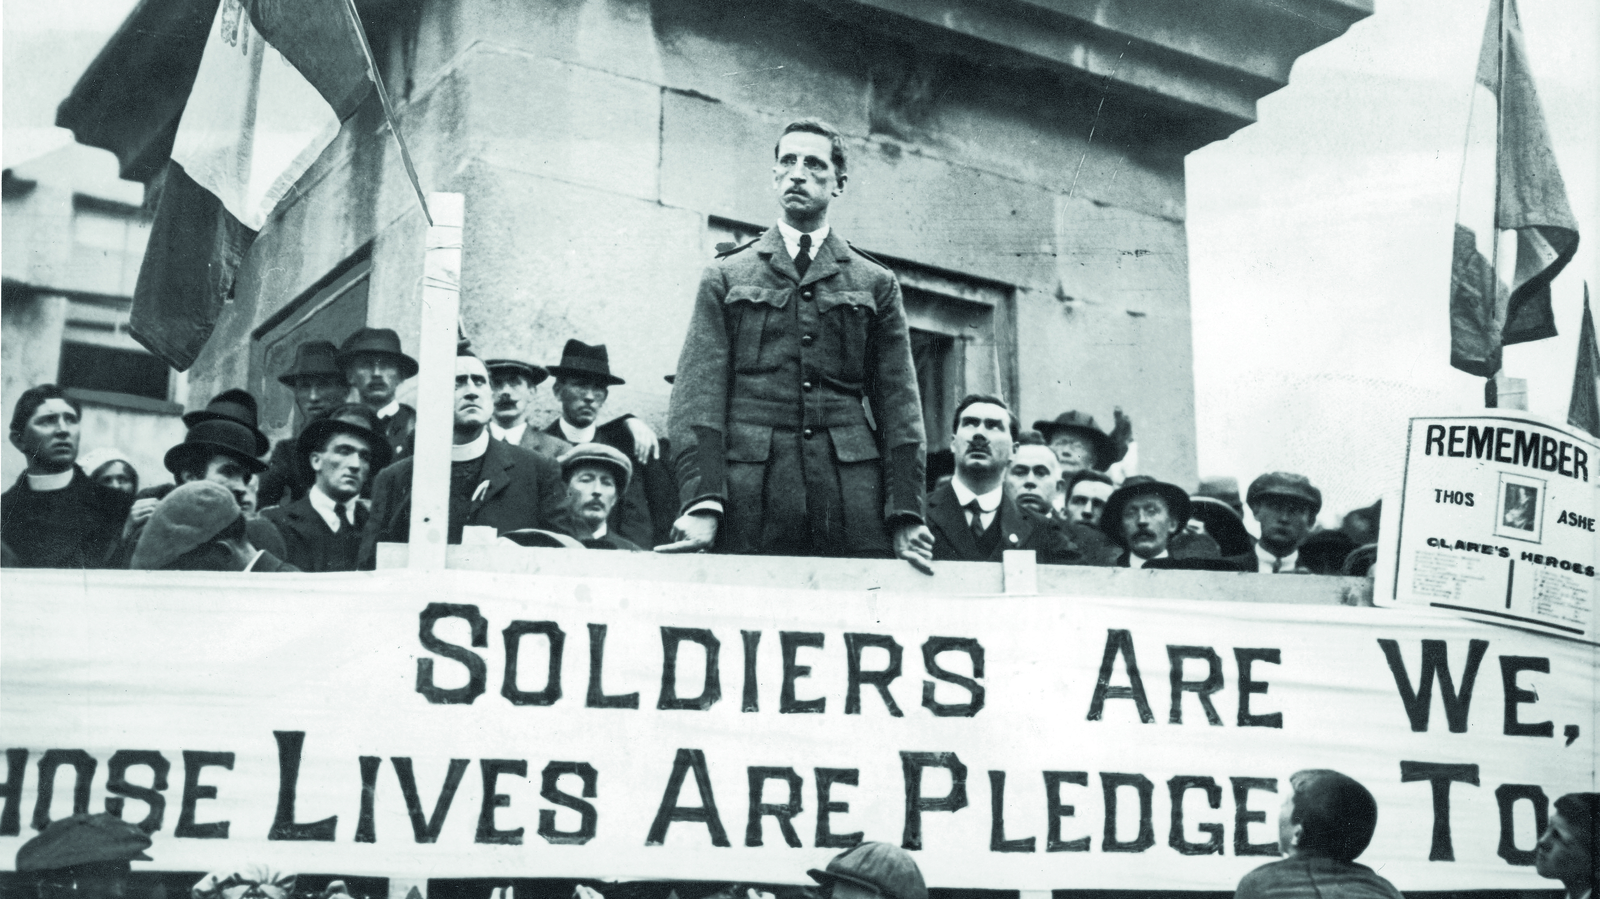 Image - De Valera during the 1917 campaign. The Clare team paraded before matches in the 1917 All-Ireland Football Championship with a banner expressing their support.